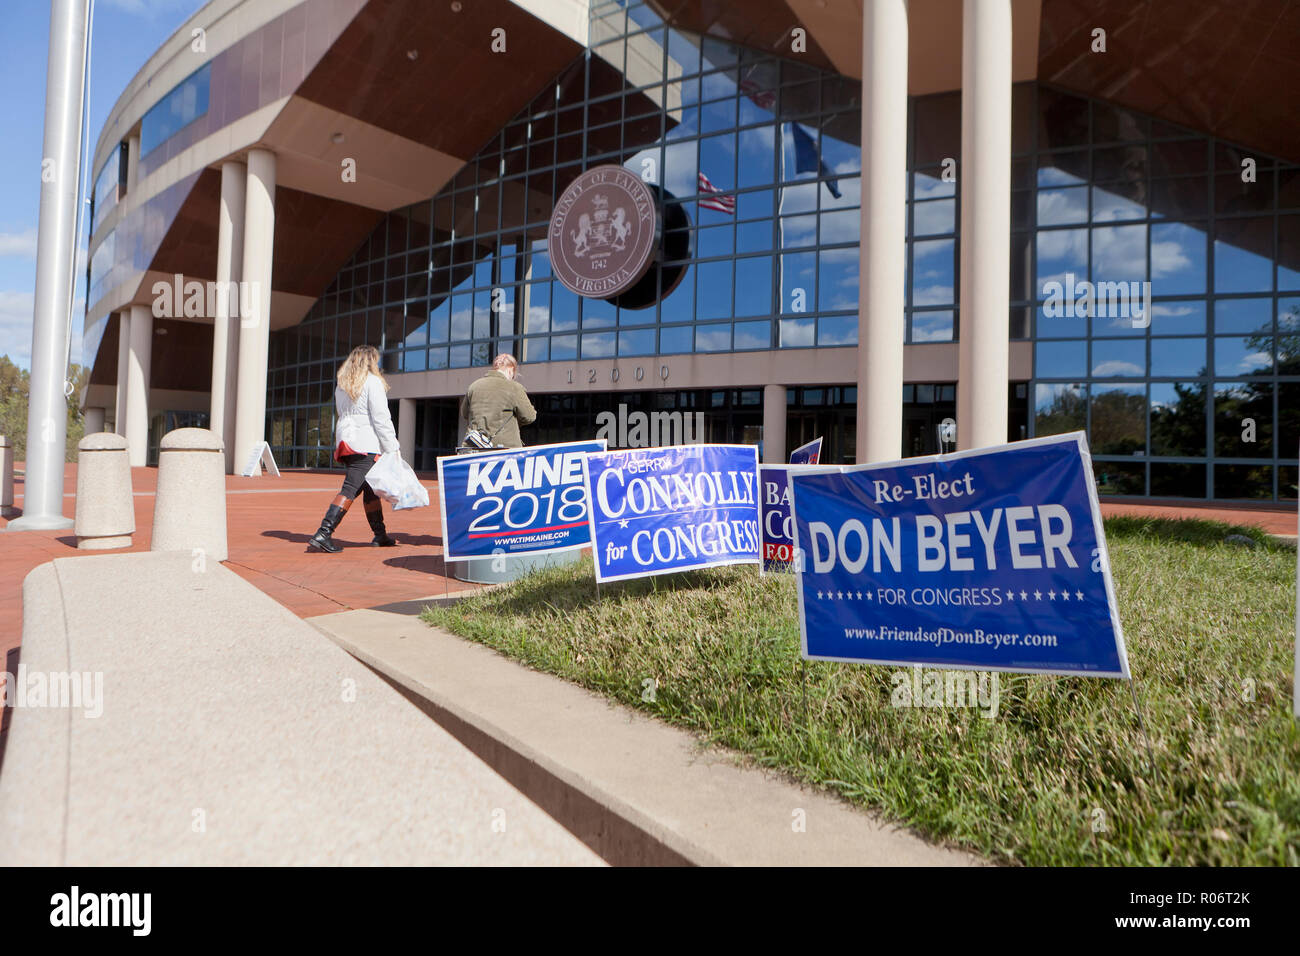 Virginia congressional race candidates placards outside of a polling place during the 2018 midterm elections - Fairfax County, Virginia USA - Stock Image